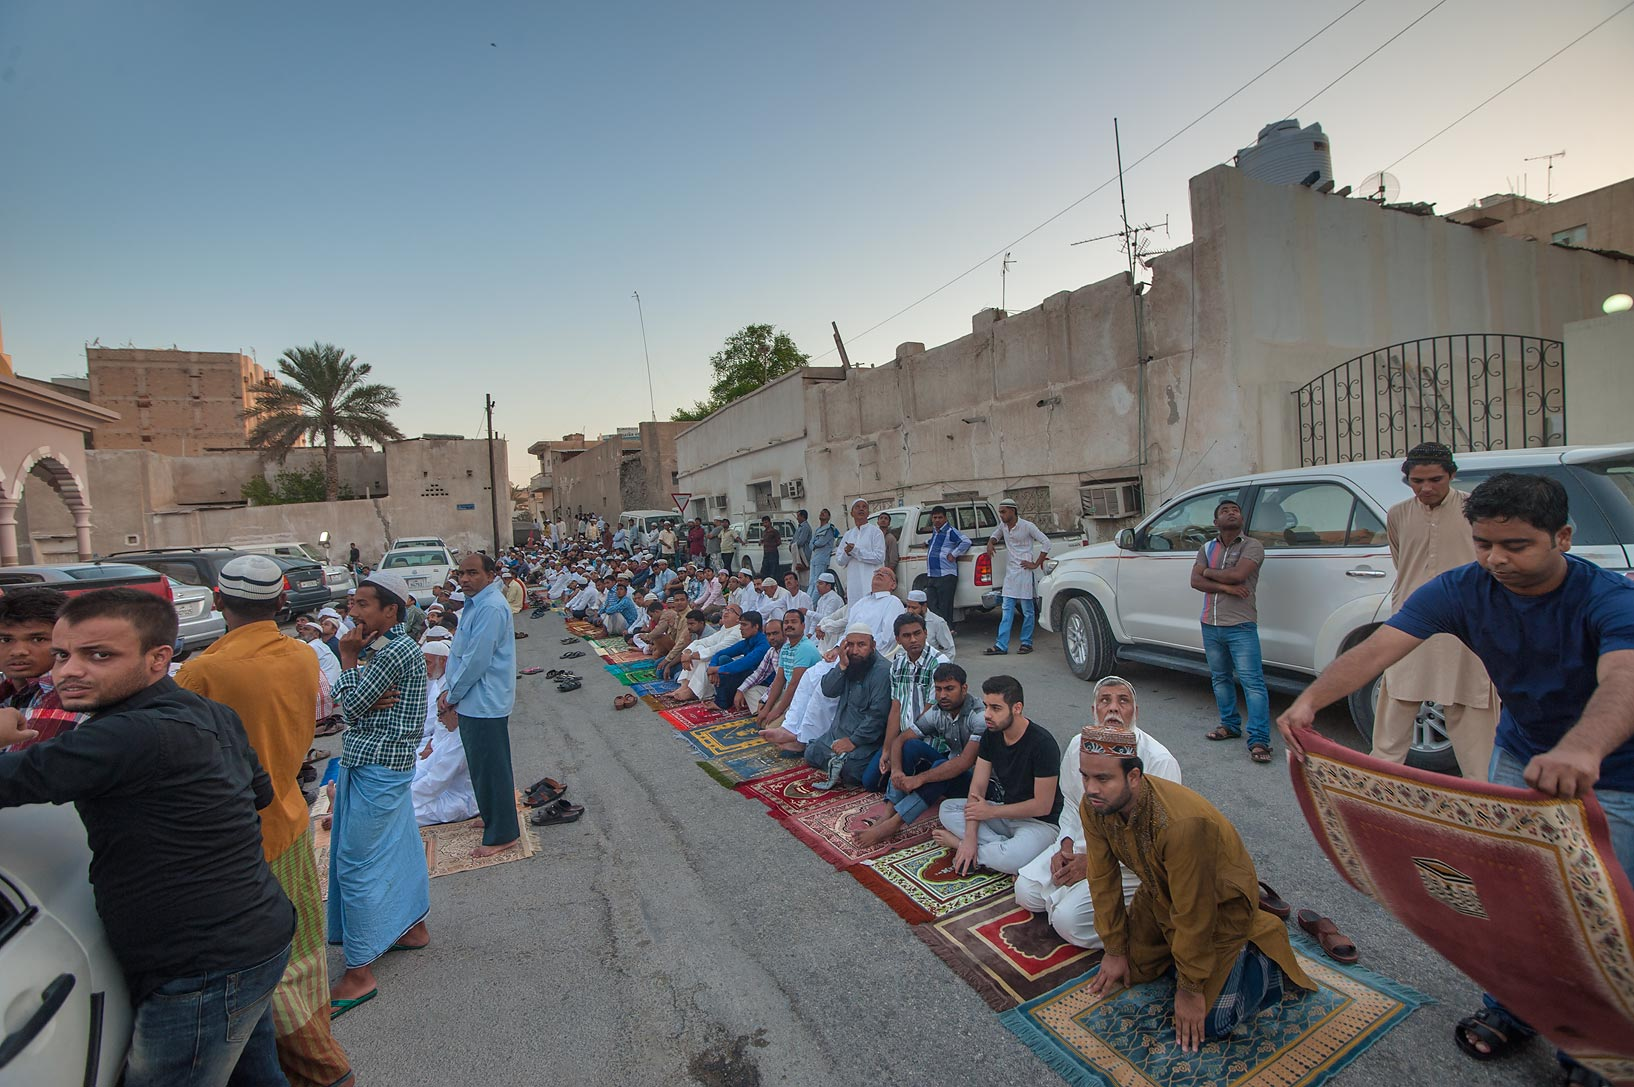 People setting carpets for Eid al-Adha prayer...masjid) in Musheirib area. Doha, Qatar